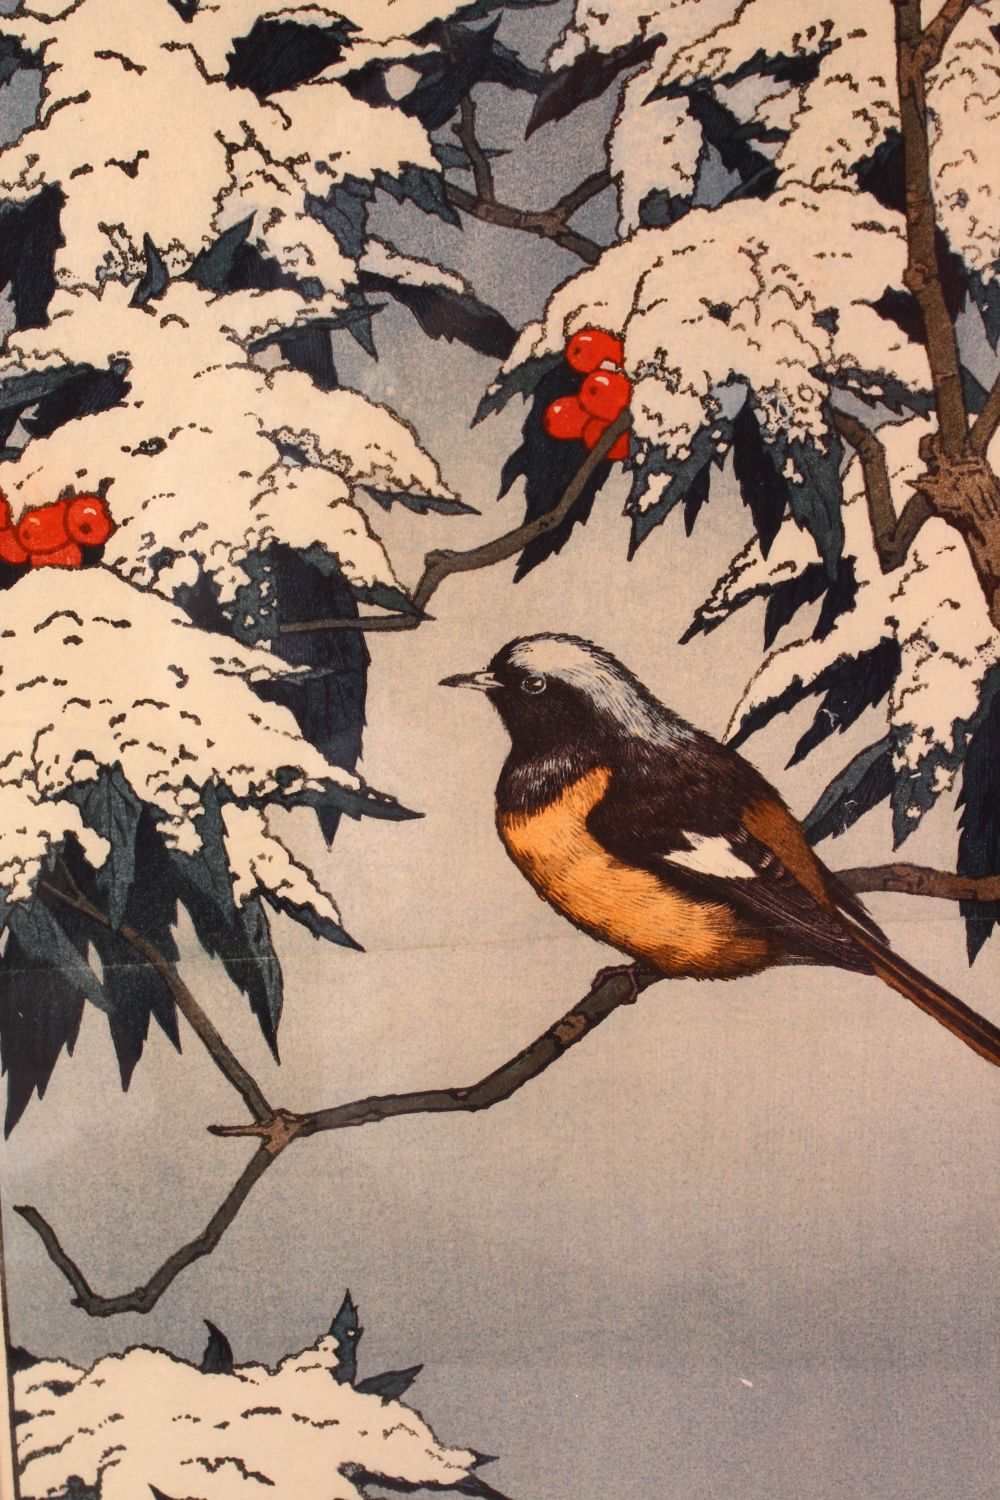 A LARGER JAPANESE WOODBLOCK PRINT BY TOSHI YOSHIDA 1911 - 1995, sitting under snow covered - Image 2 of 4